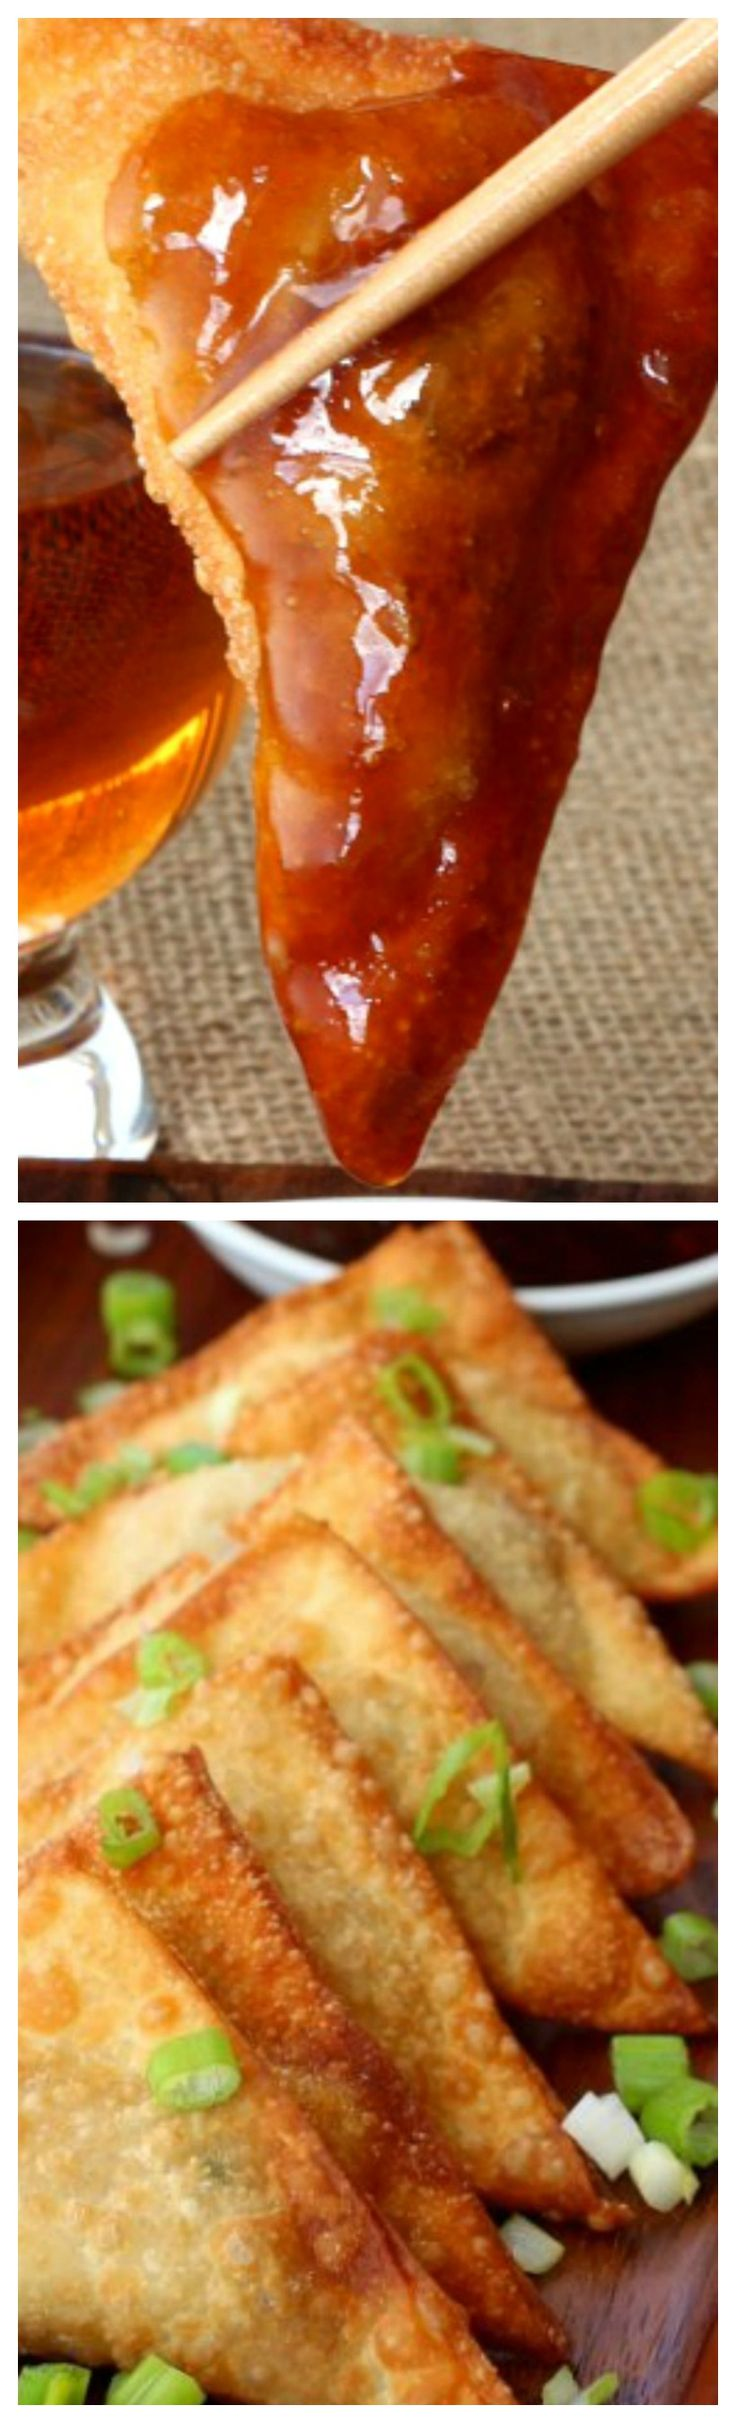 Whiskey Glazed Fried Dumplings ~ Crispy, fried wonton filled with ground turkey, bacon and cream cheese then dipped in a delicious whiskey glaze!